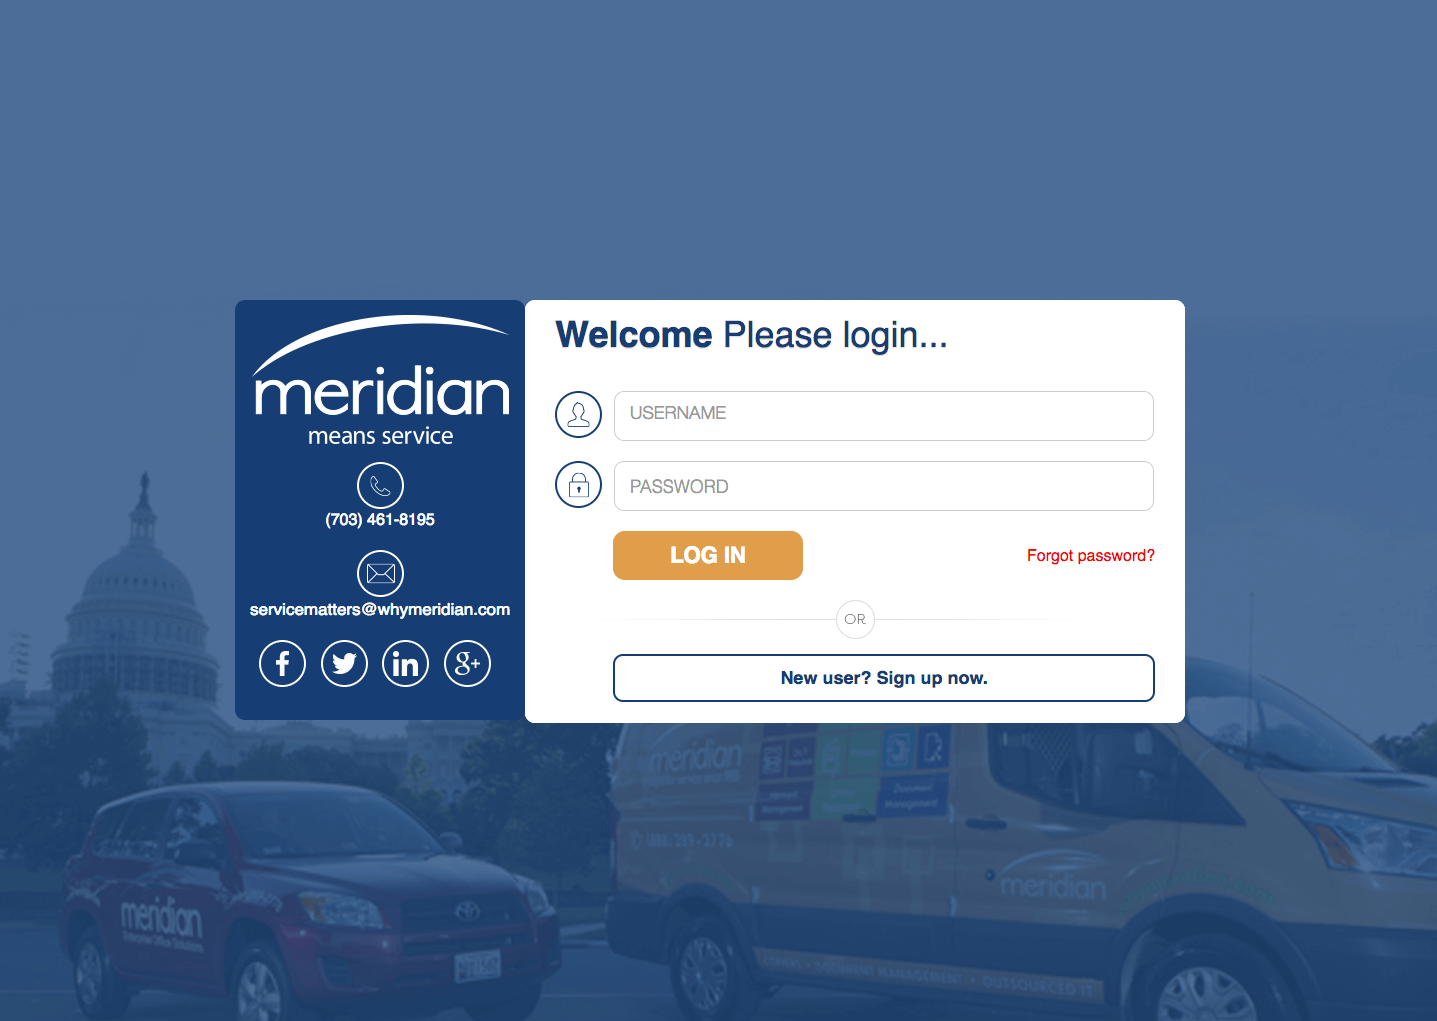 Customer Portal Redesigned to Enhance Your Meridian Experience